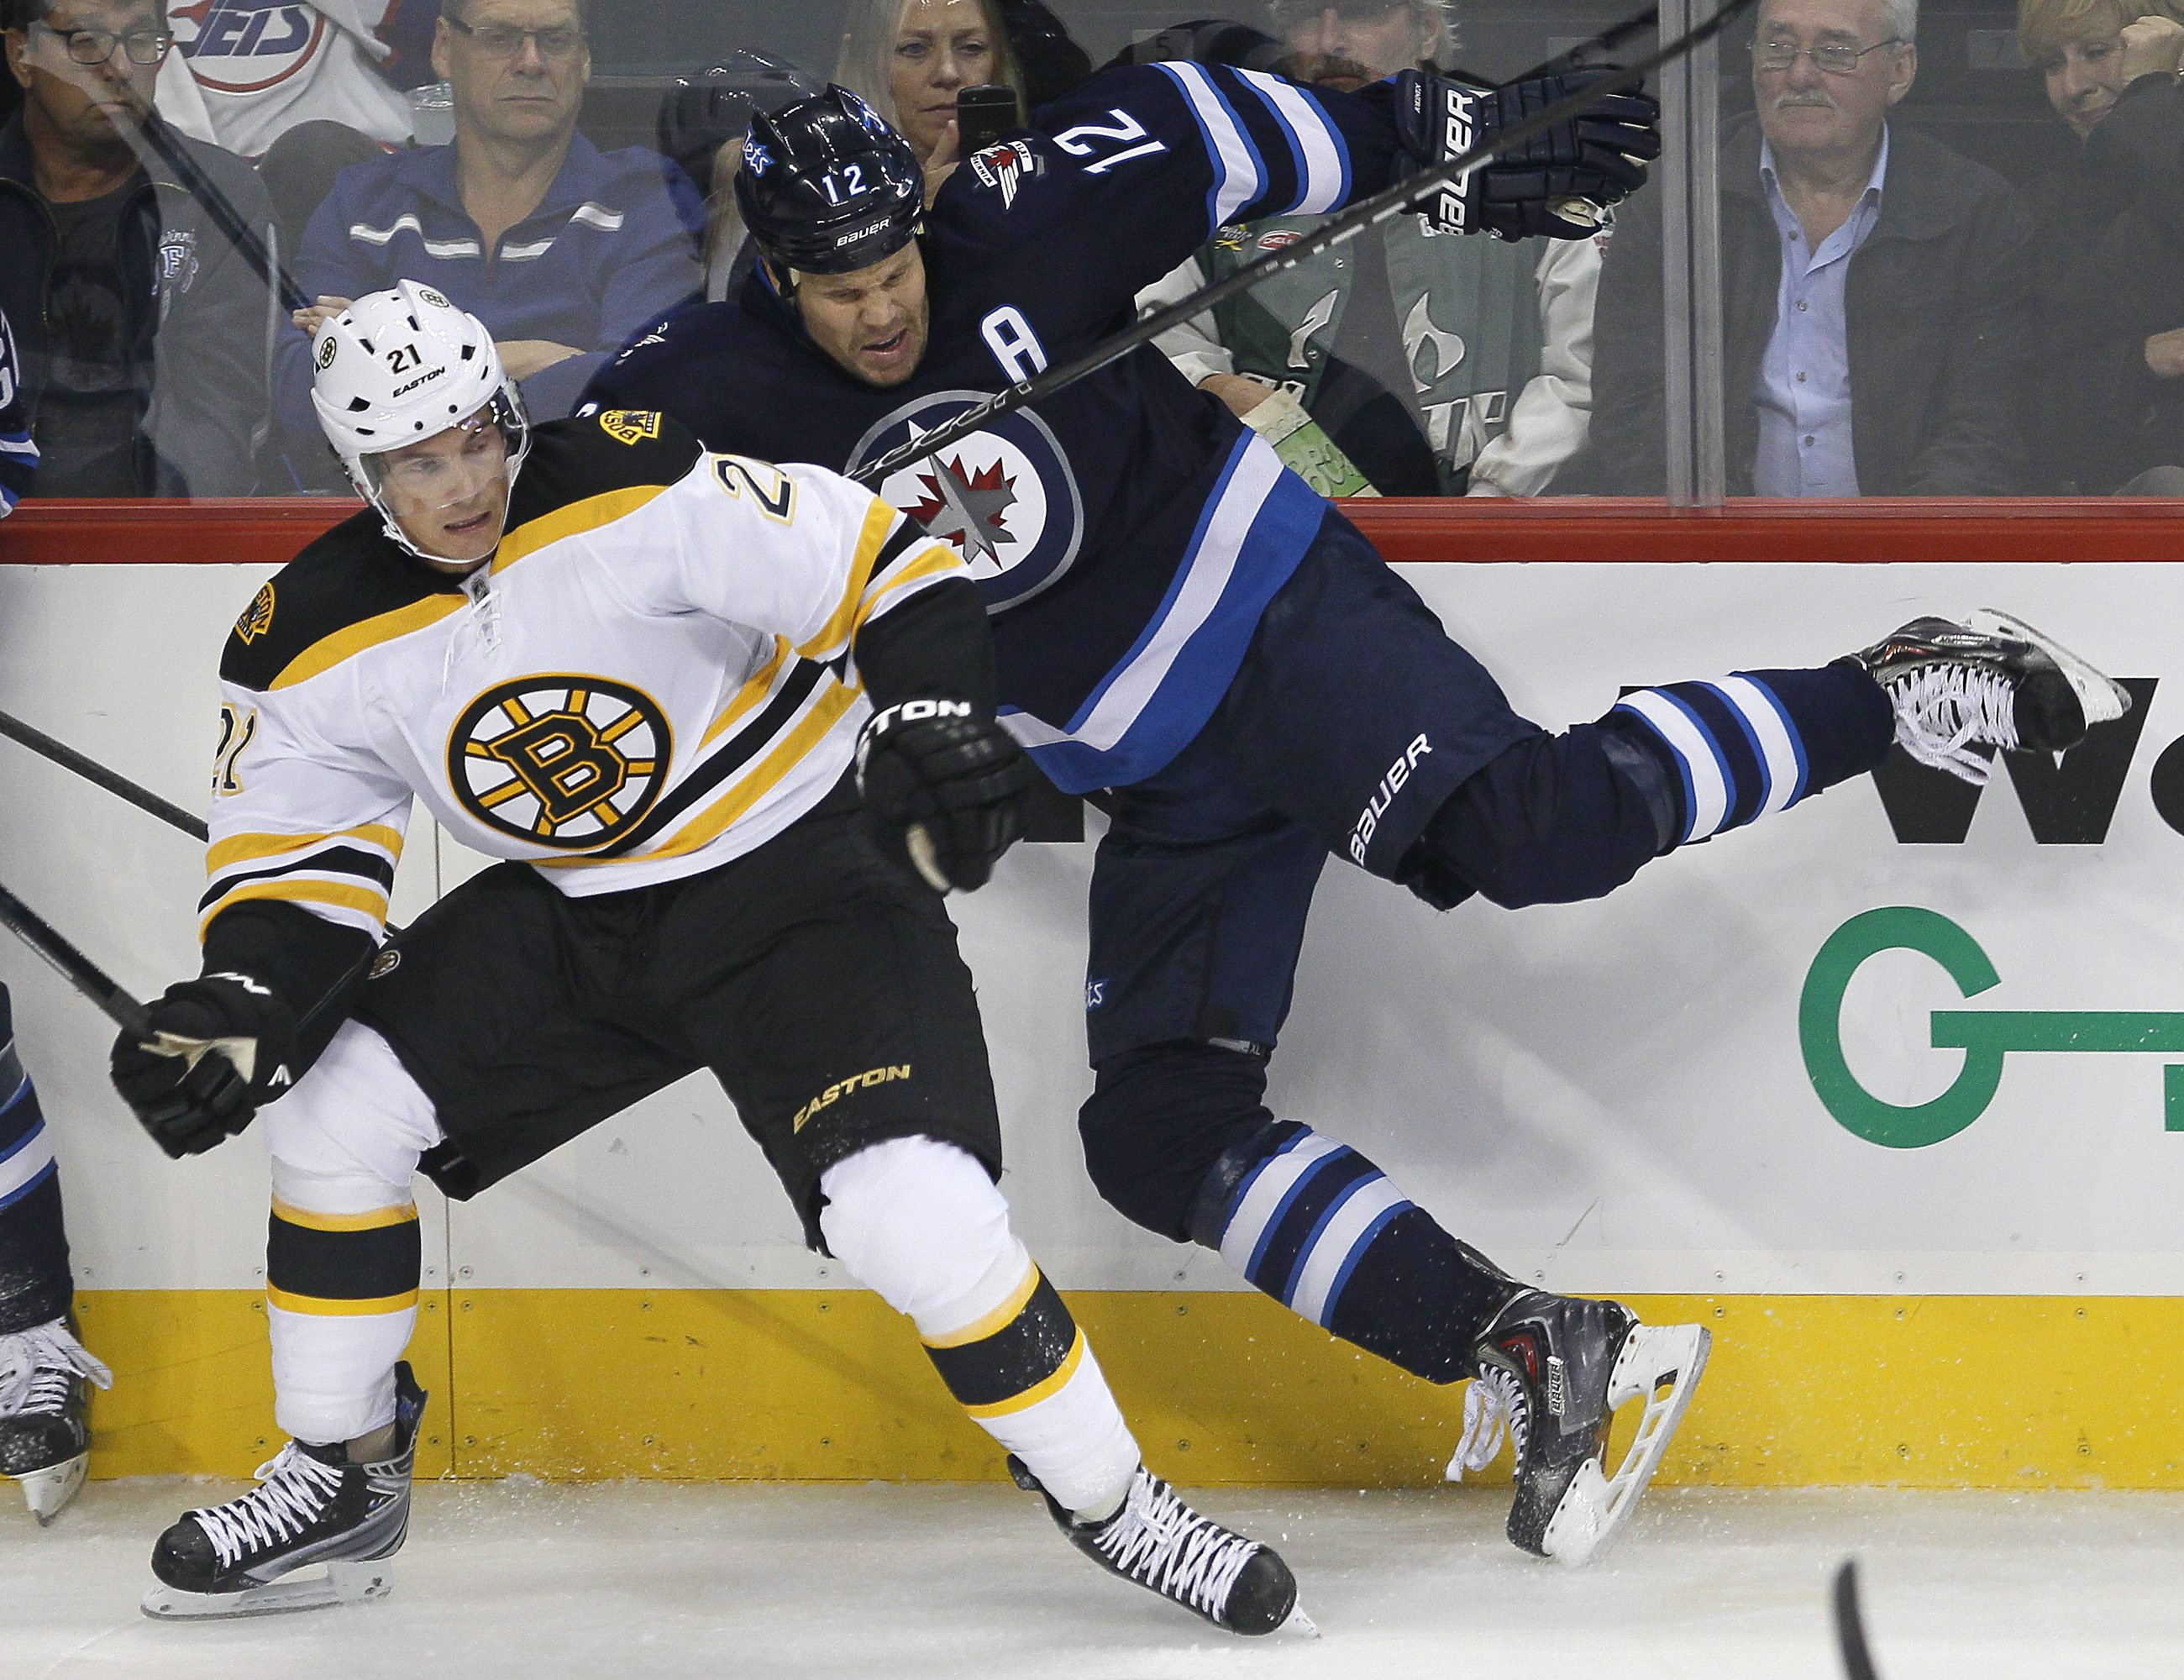 Boston Bruins' Loui Eriksson, left, takes out Winnipeg Jets' Olli Jokinen during the first period of a preseason NHL hockey game Thursday, Sept. 26, 2013, in Winnipeg, Manitoba